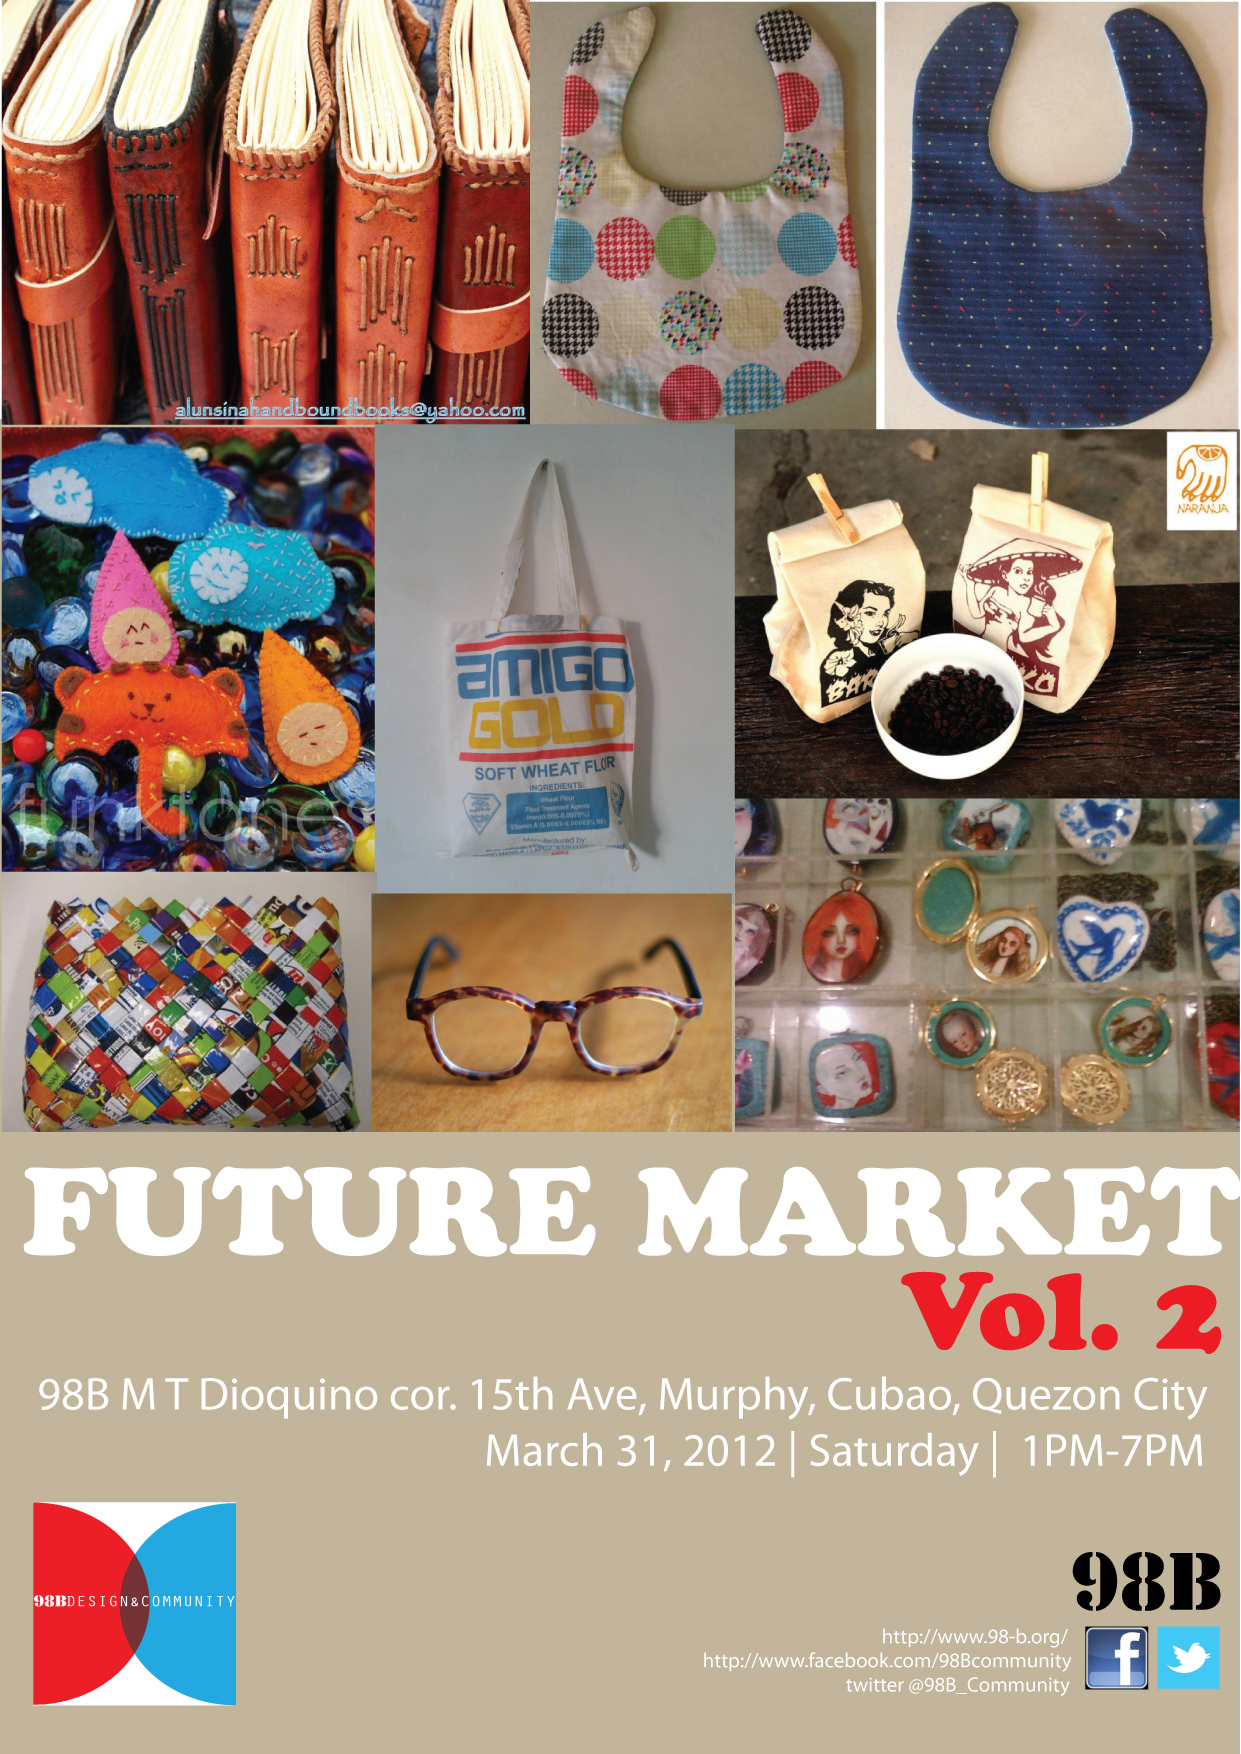 FUTURE MARKET Vol. 2 TODAY!!! March 31, 2012, Saturday, 1-7 PM back to back with a talk by Yumi Roth & Nadine Wasserman presented in cooperation with Tutok Artists Collective at 7PM